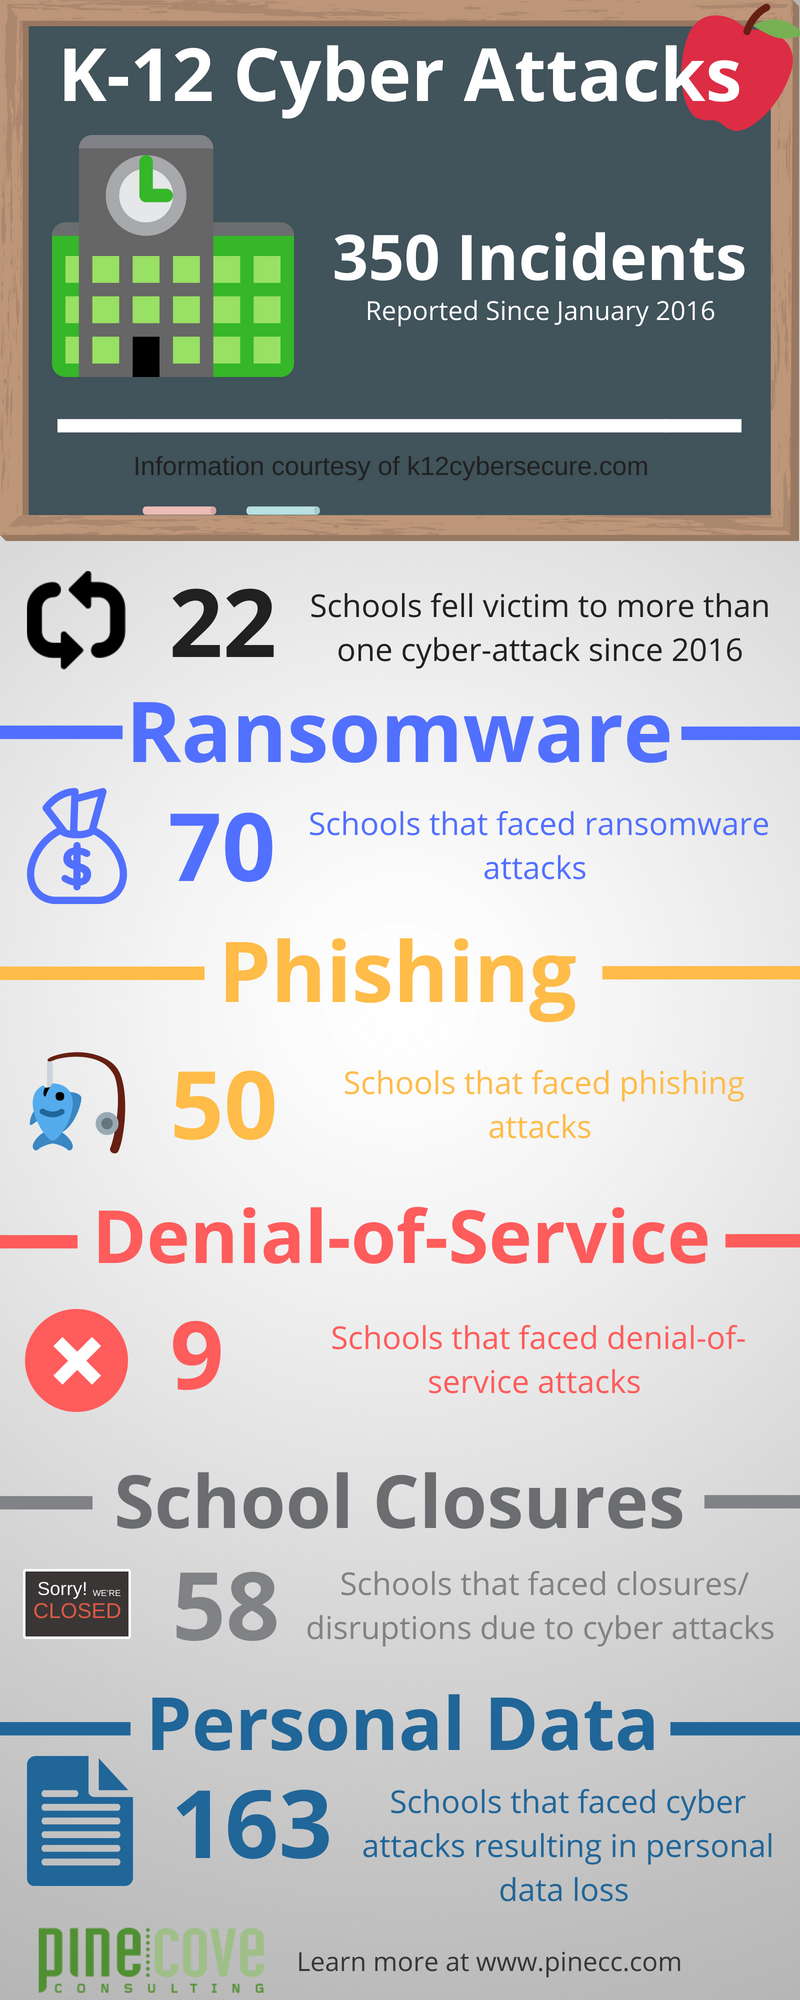 K12 Cyber Attacks Infographic